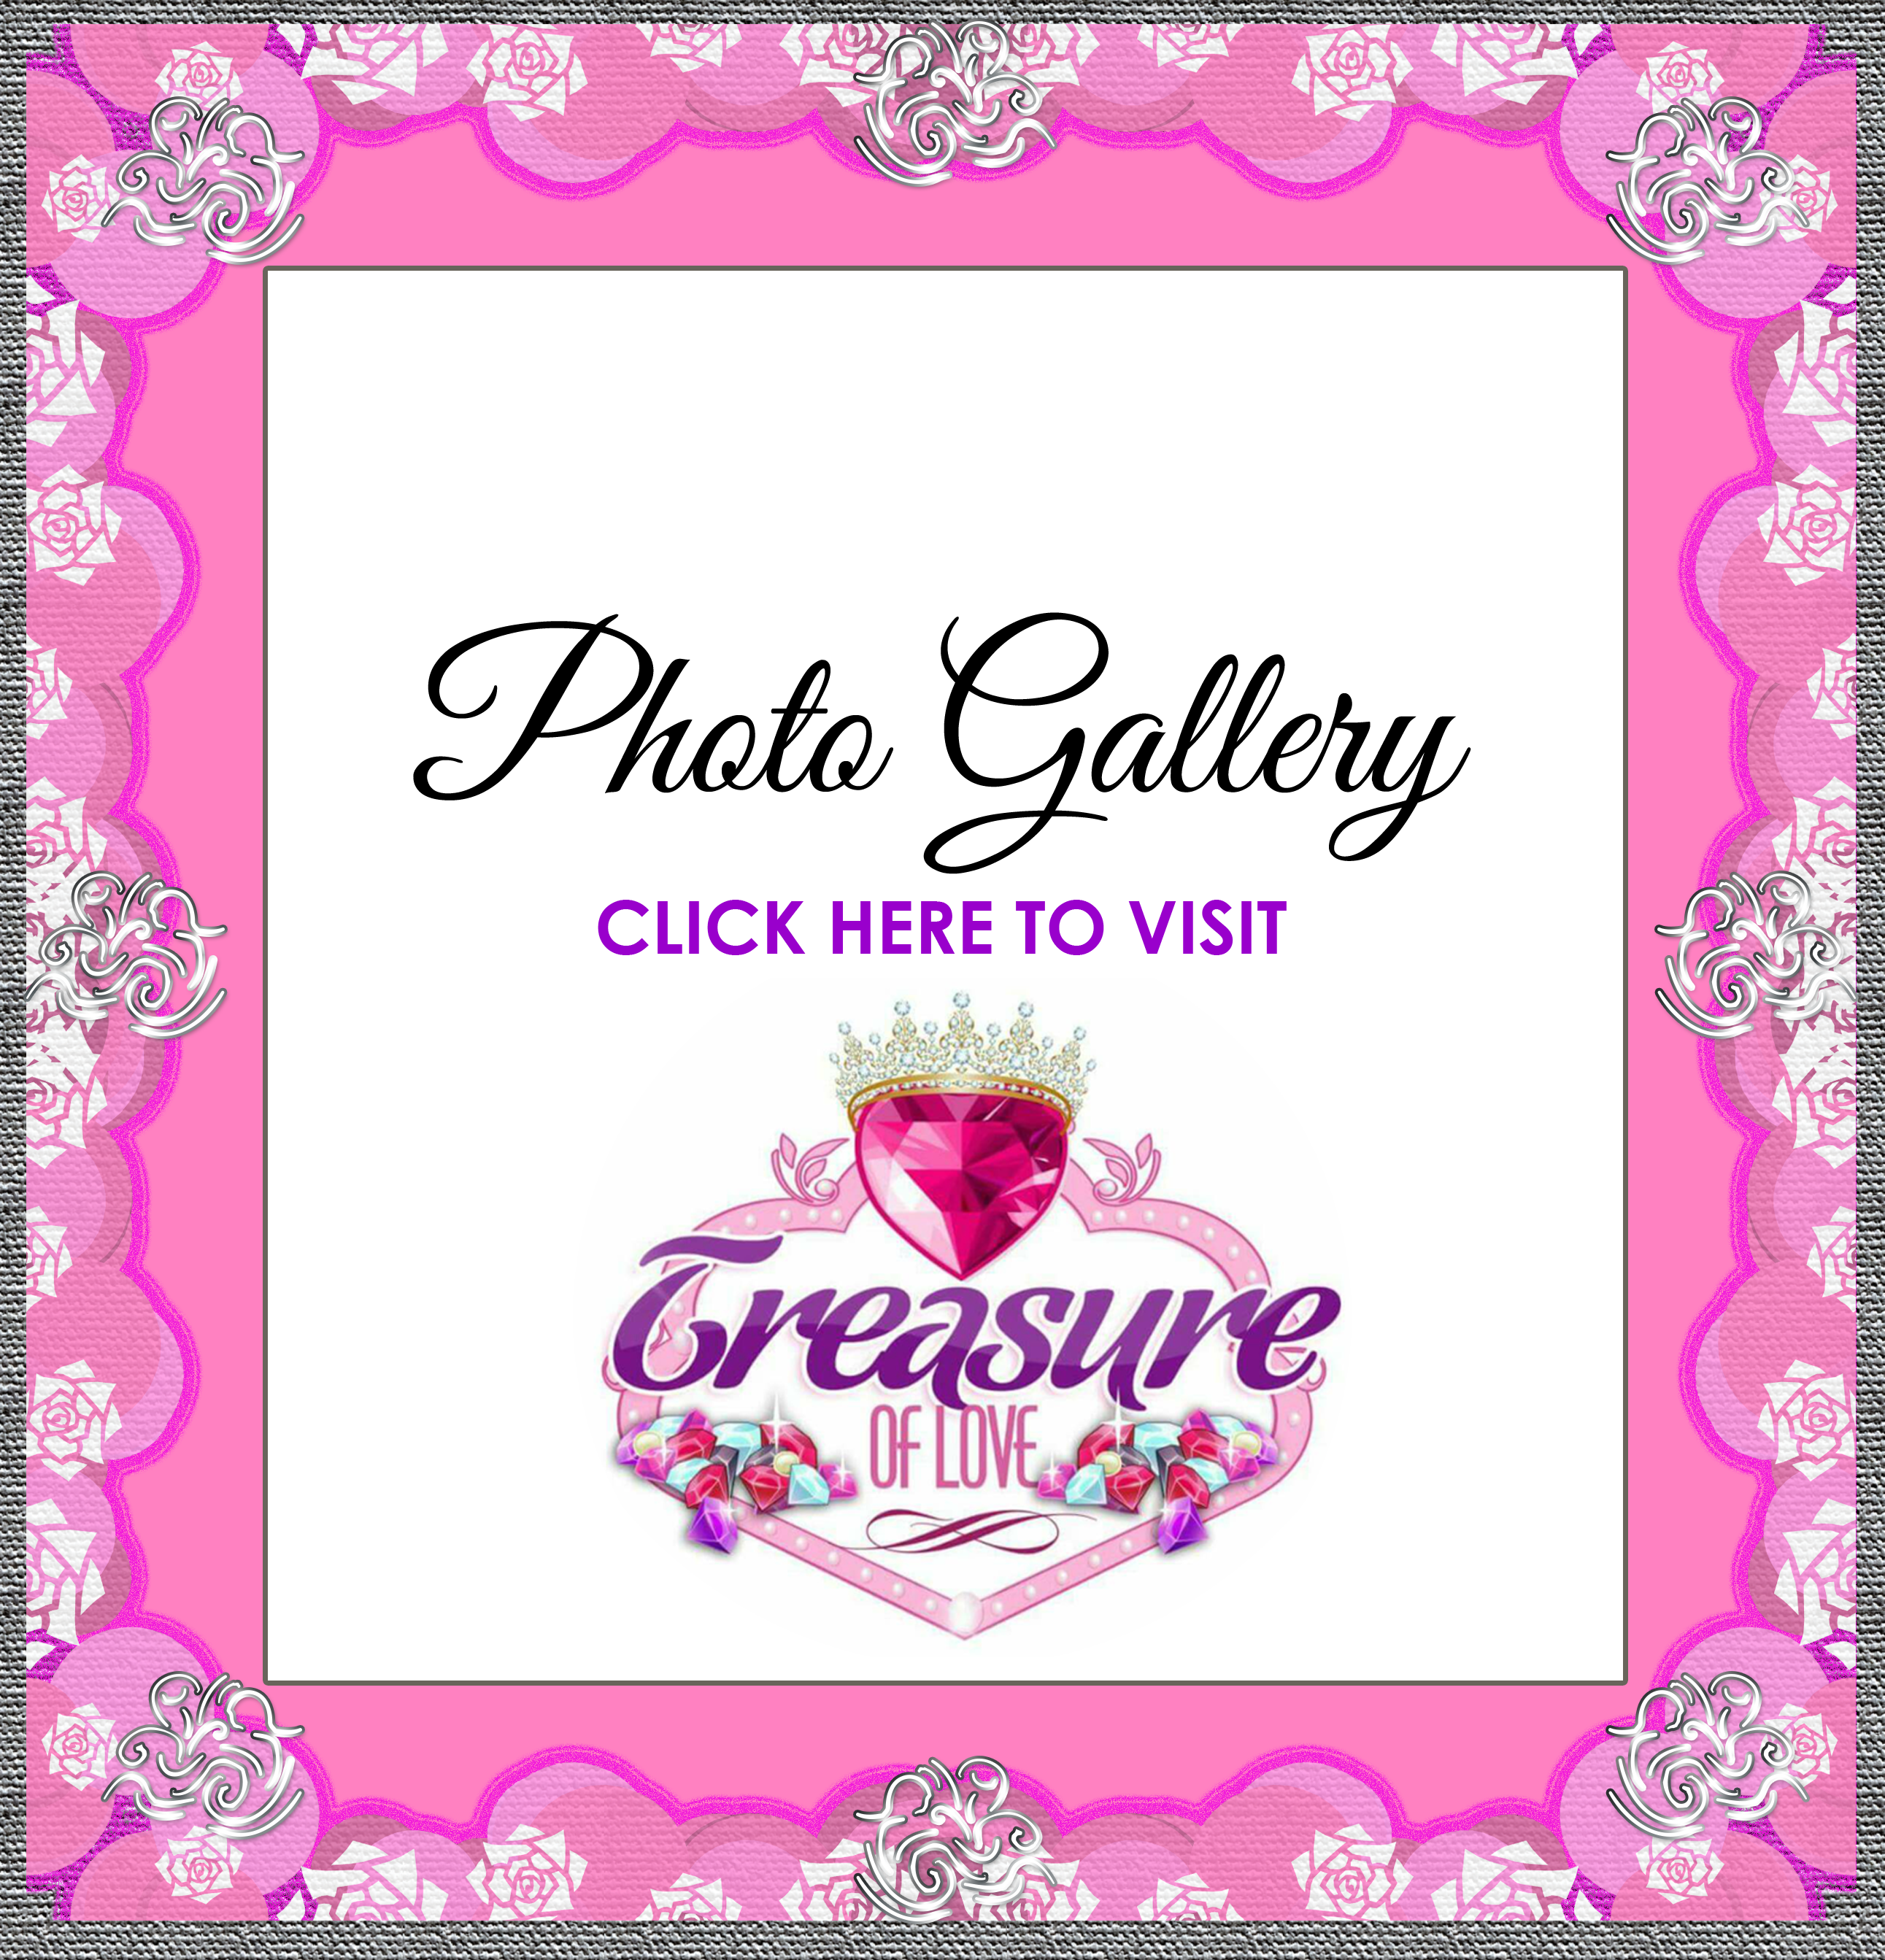 TREASURE OF LOVE PICTURE GALLERY